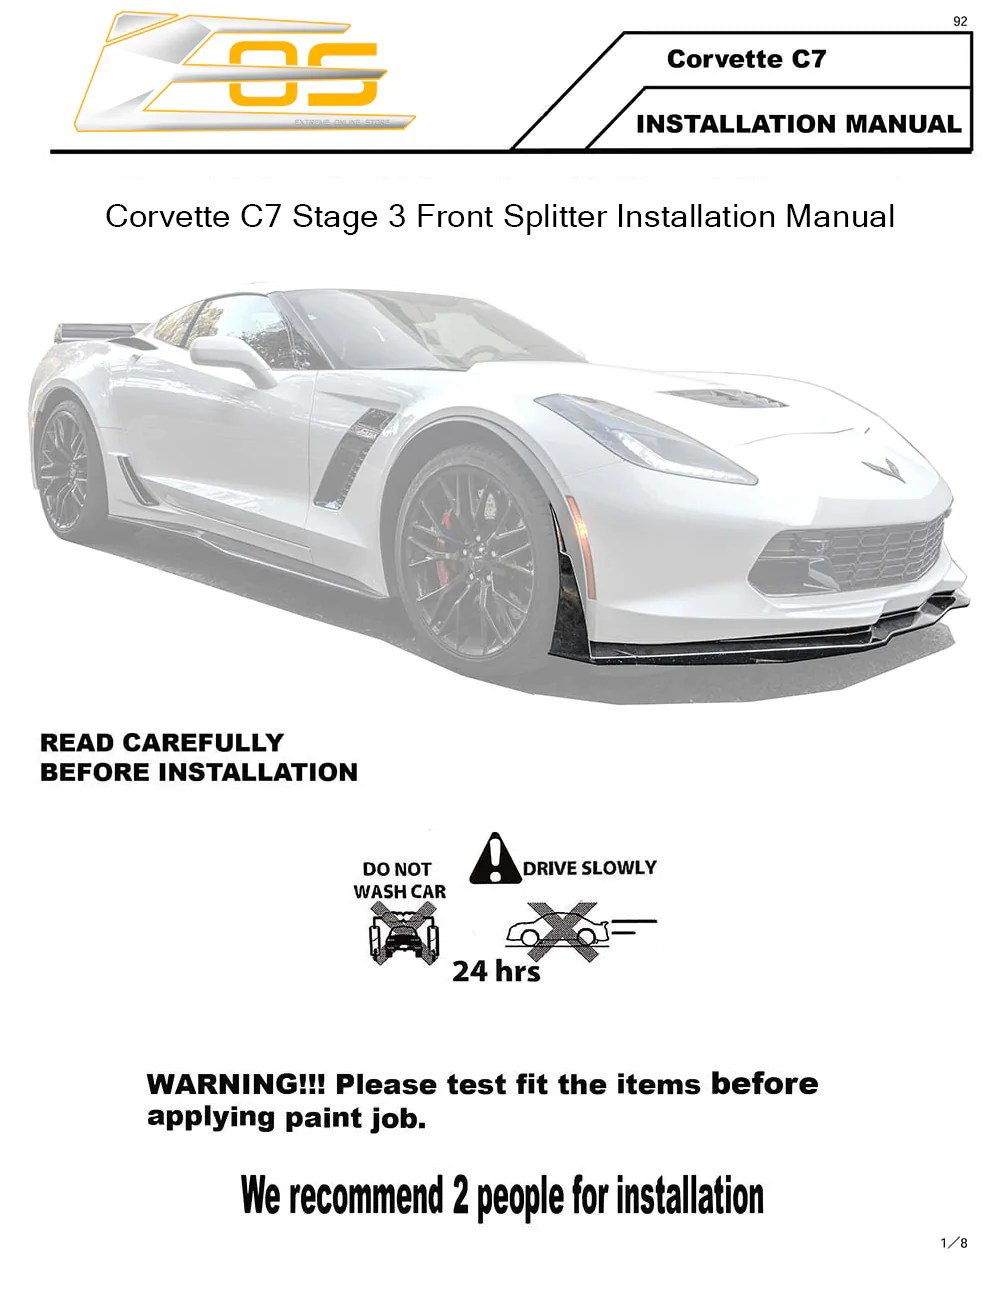 medium resolution of corvette c7 stage 3 front splitter installation instruction